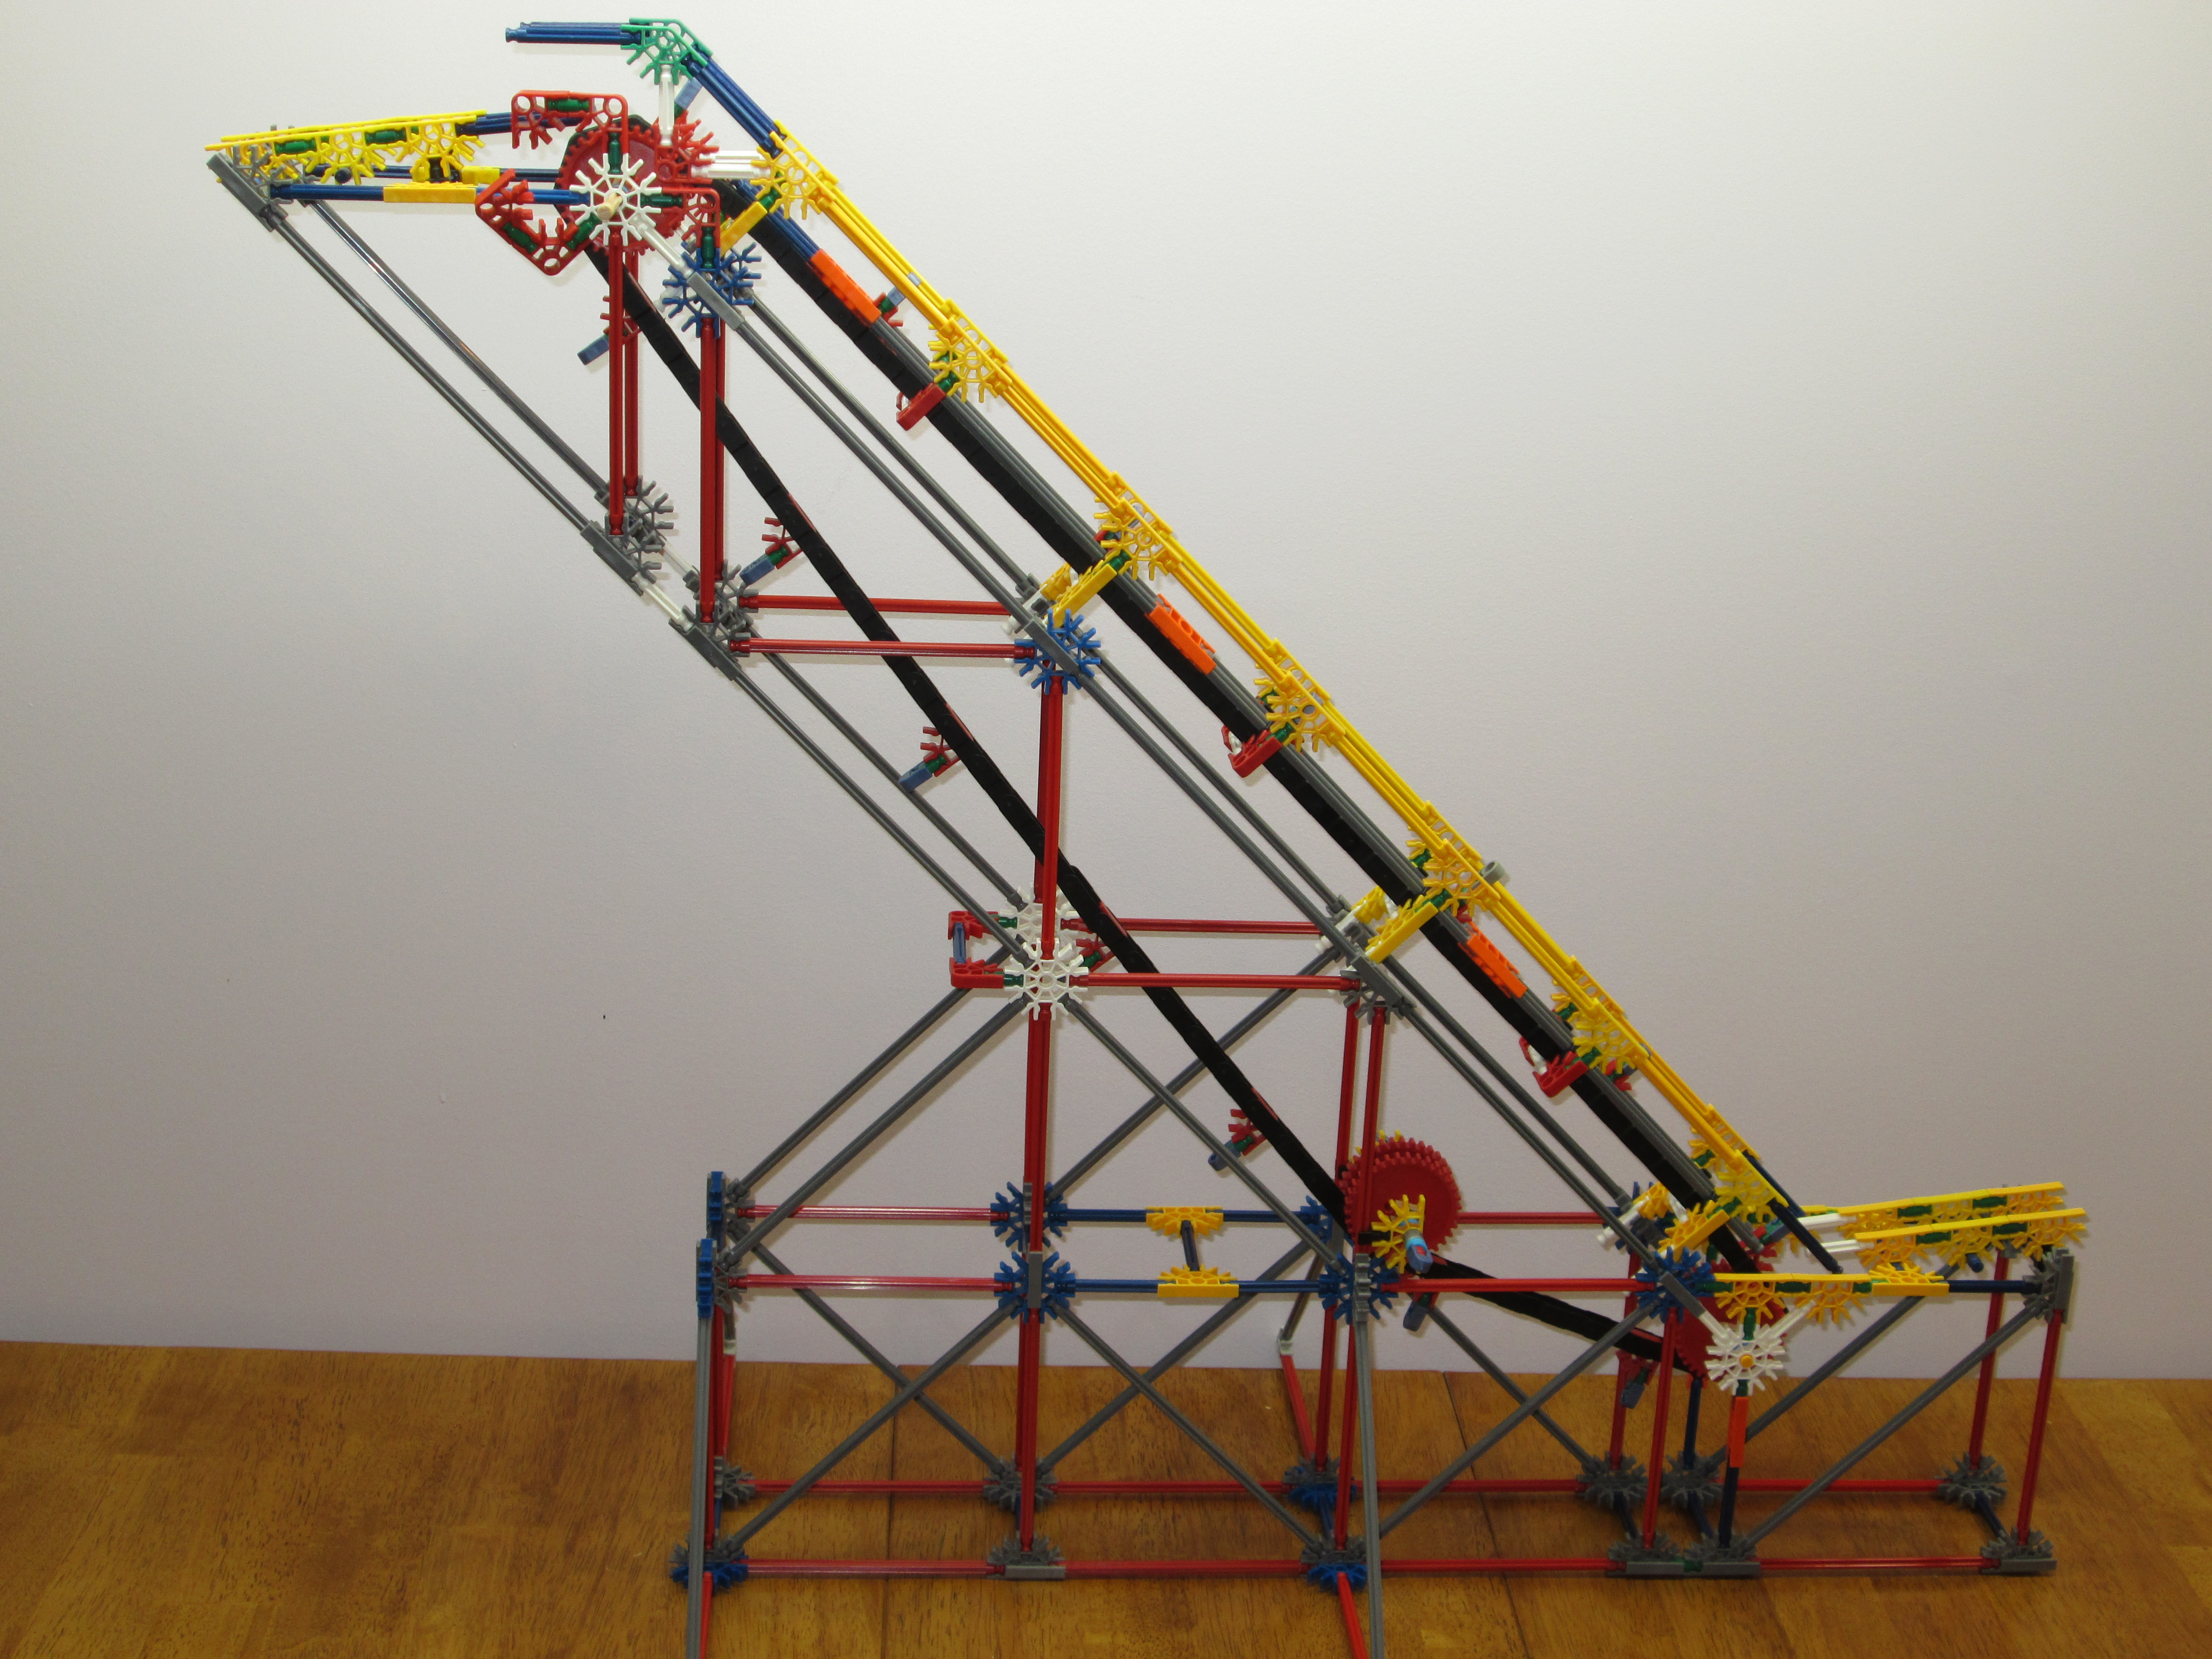 Picture of K'nex Incline Chain Lift